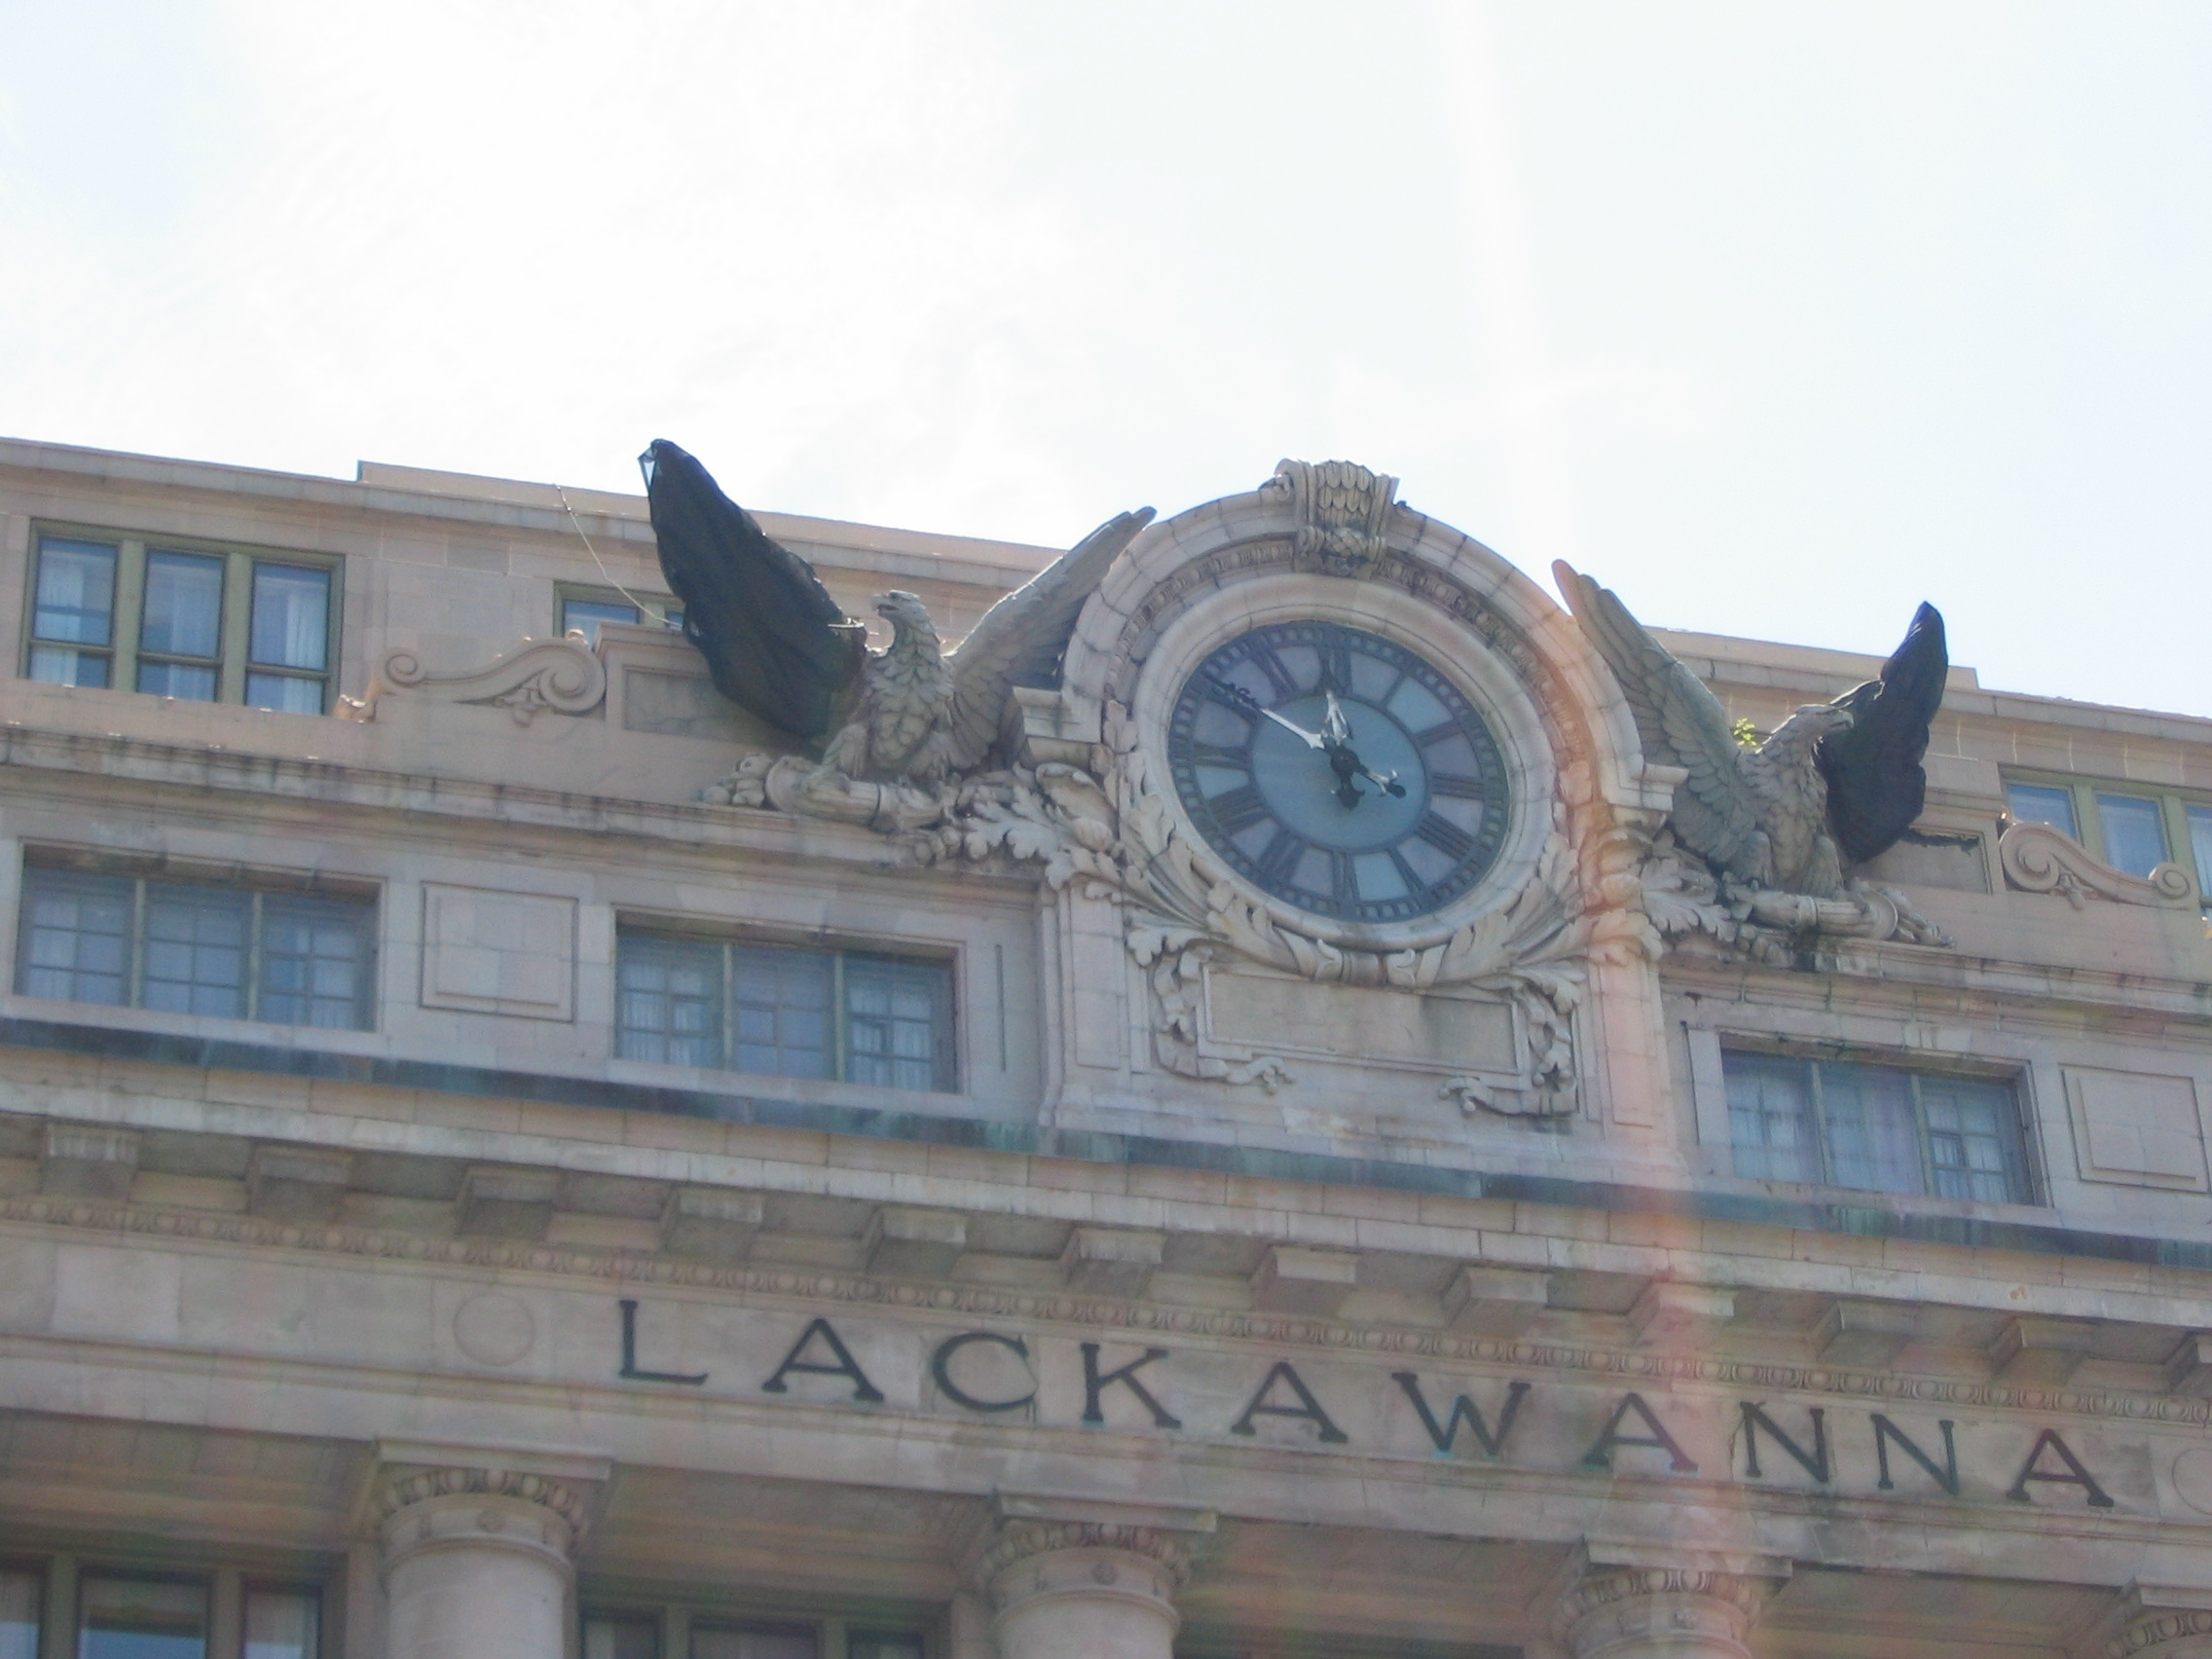 Close up of the Clock and Eagles